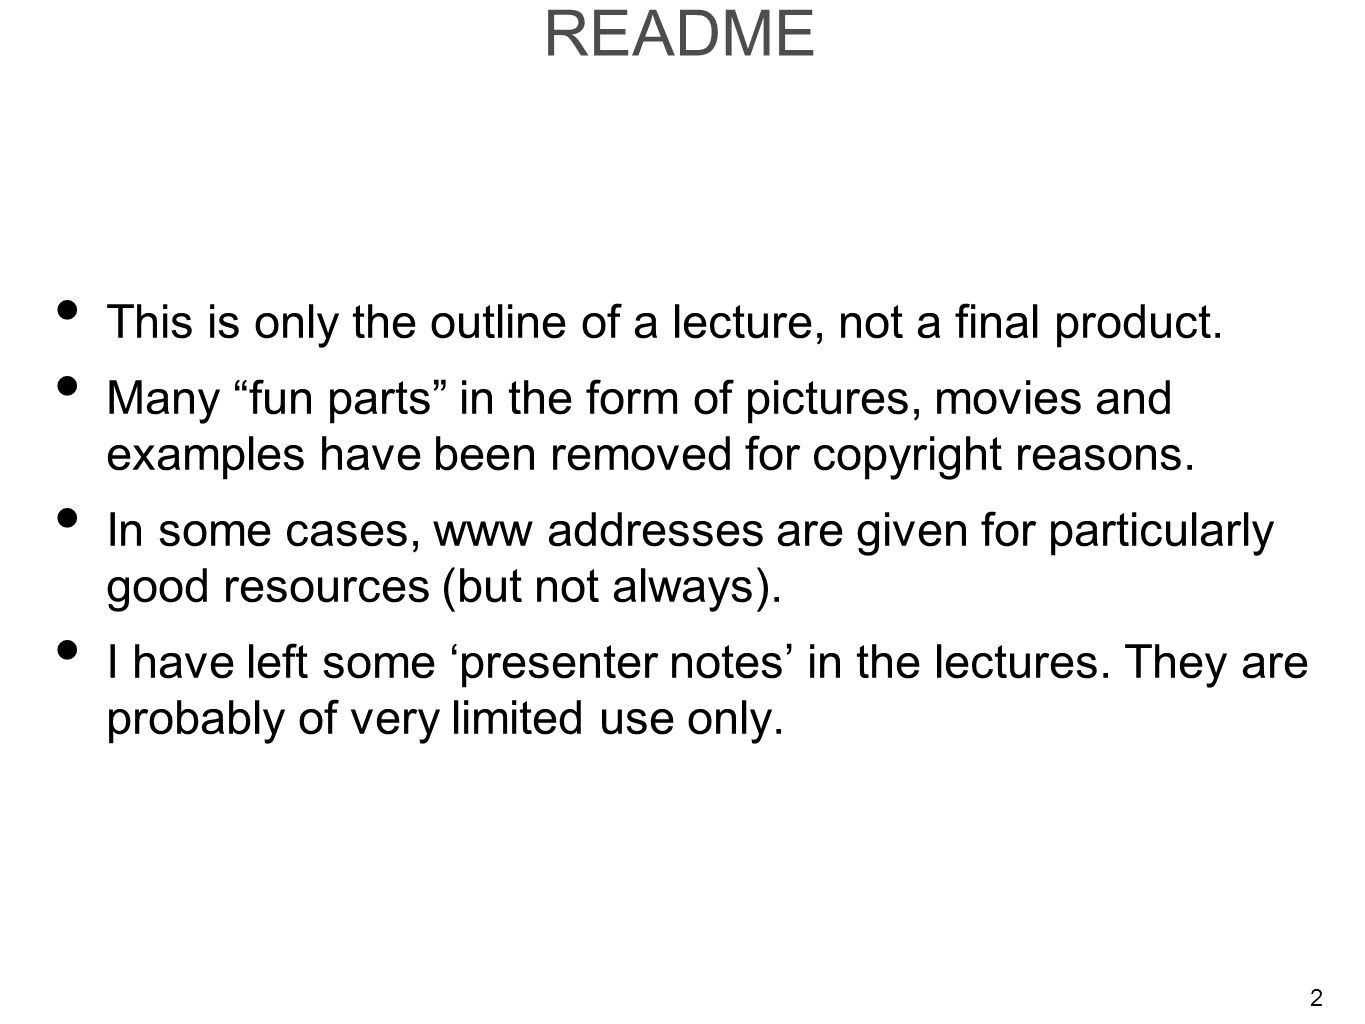 2 This is only the outline of a lecture, not a final product.